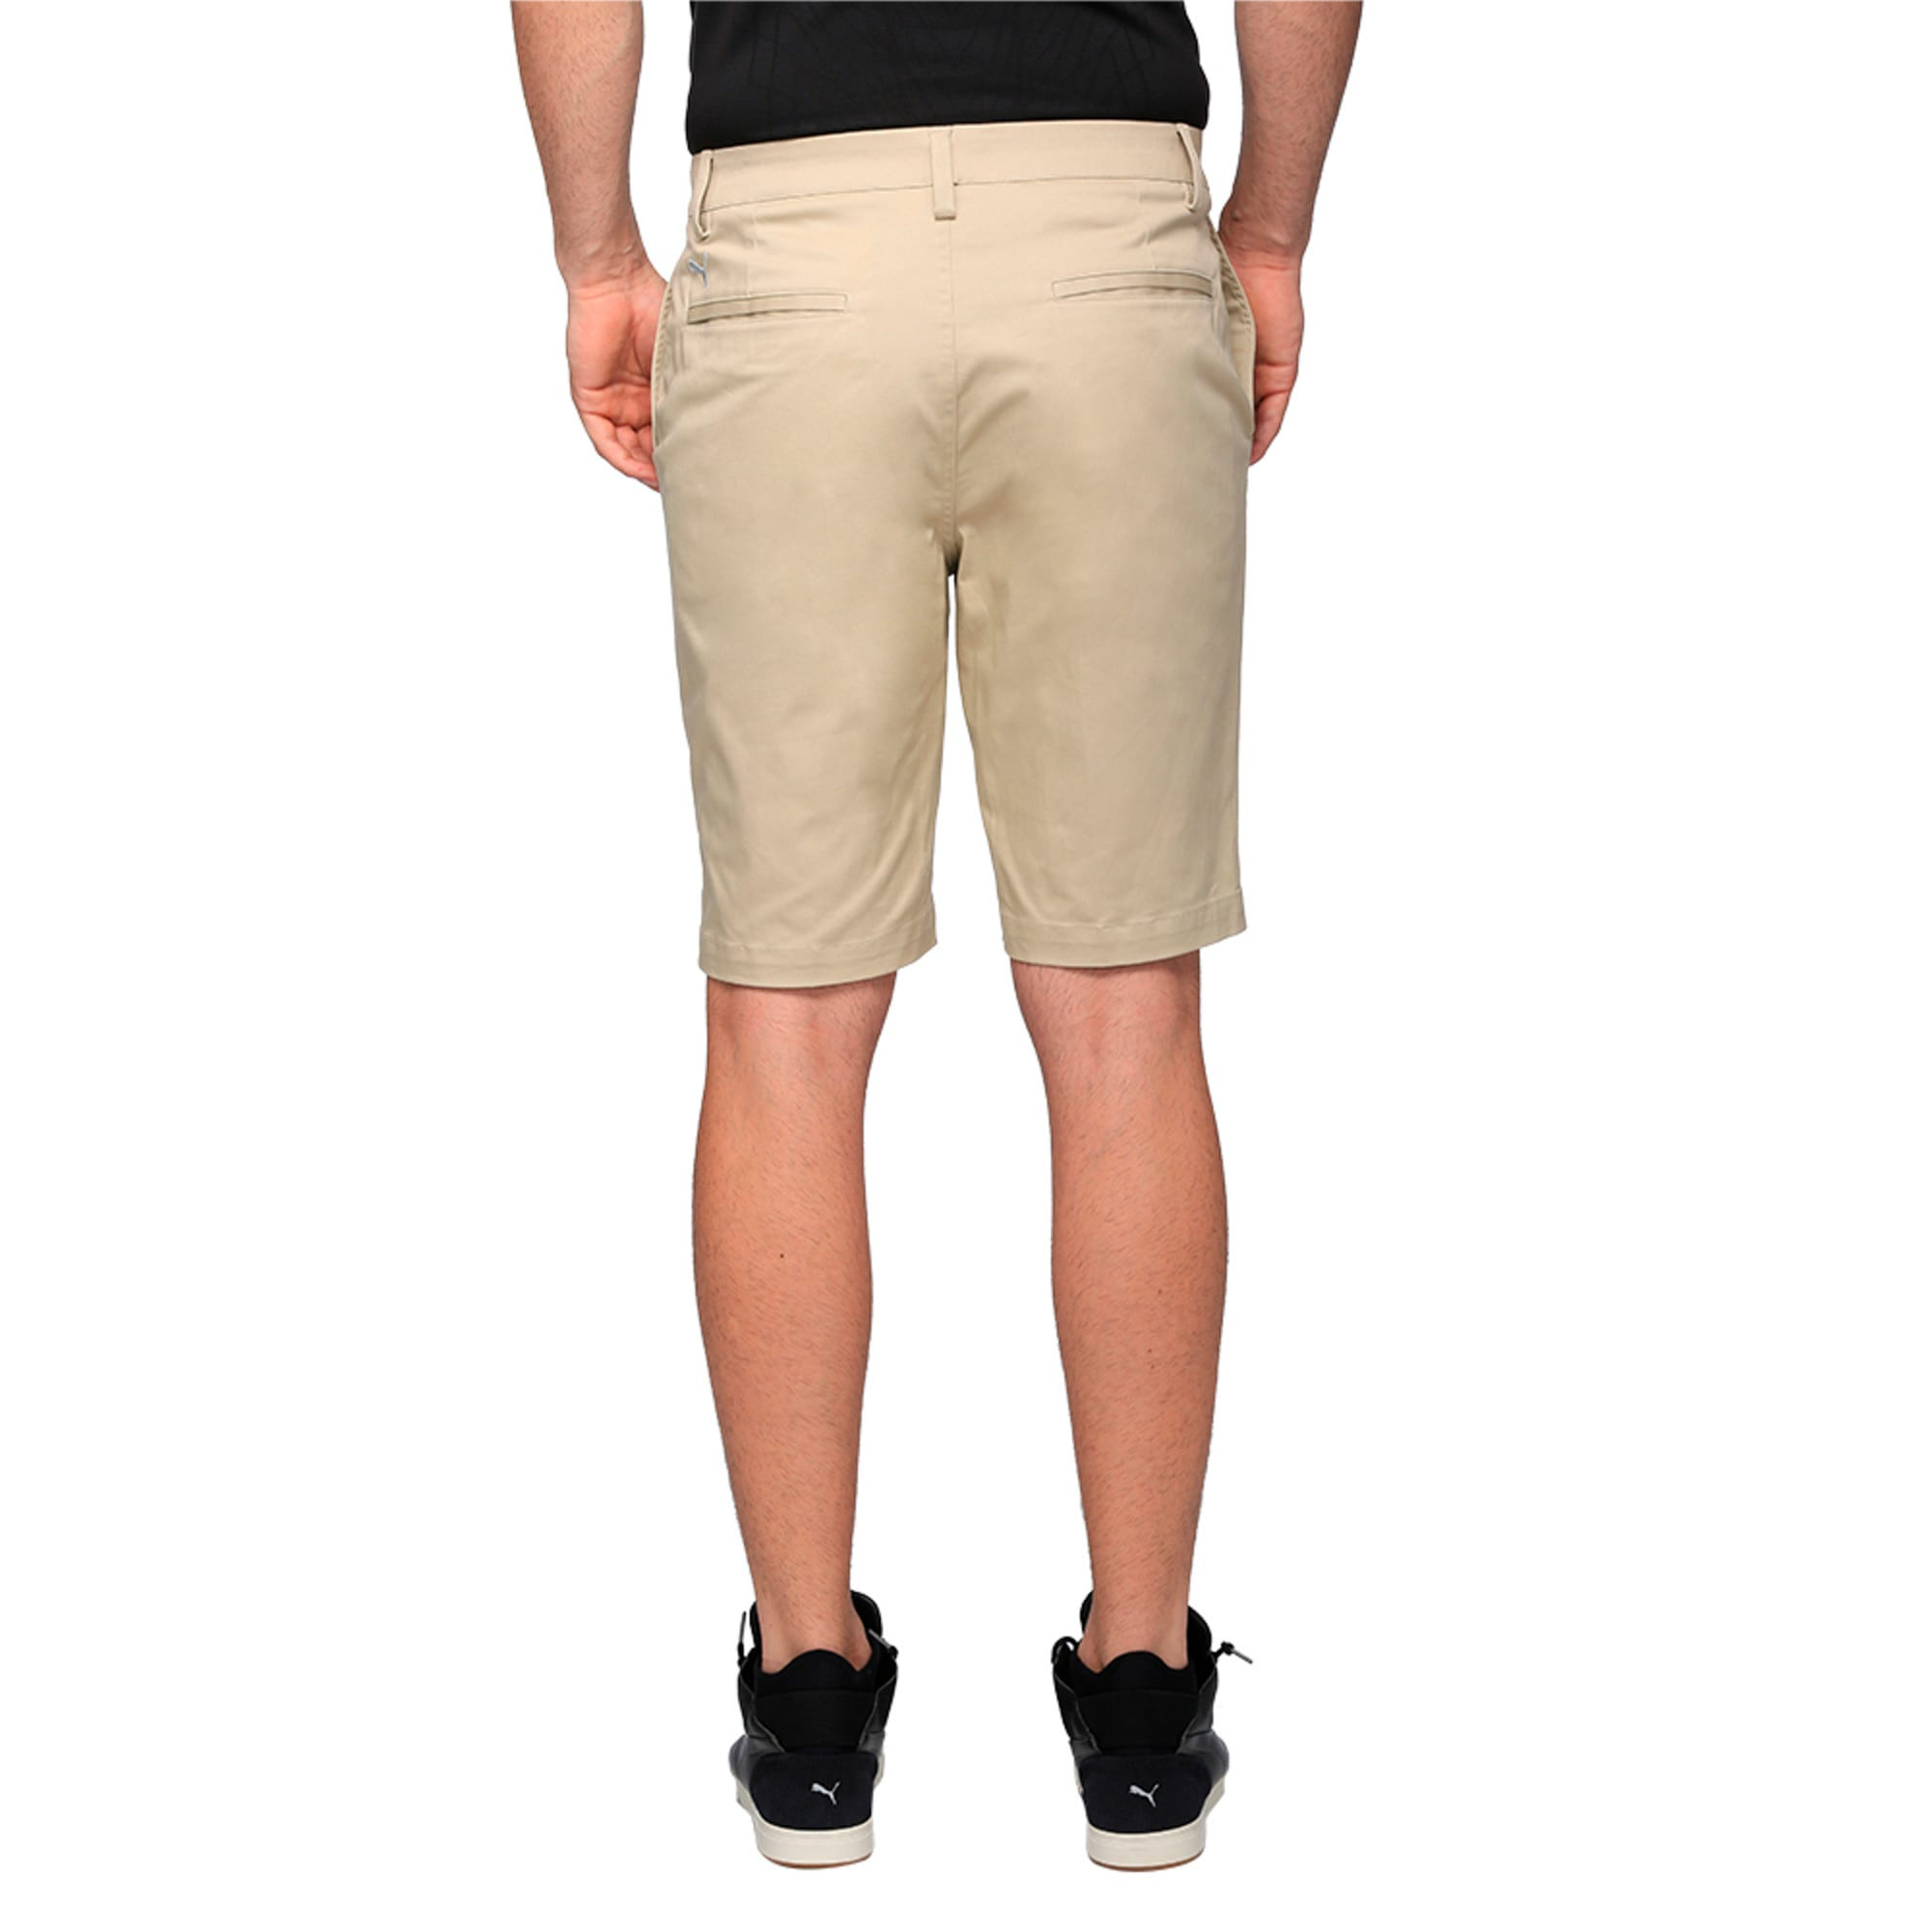 Thumbnail 3 of Golf Men's Tailored Chino Shorts, White Pepper, medium-IND